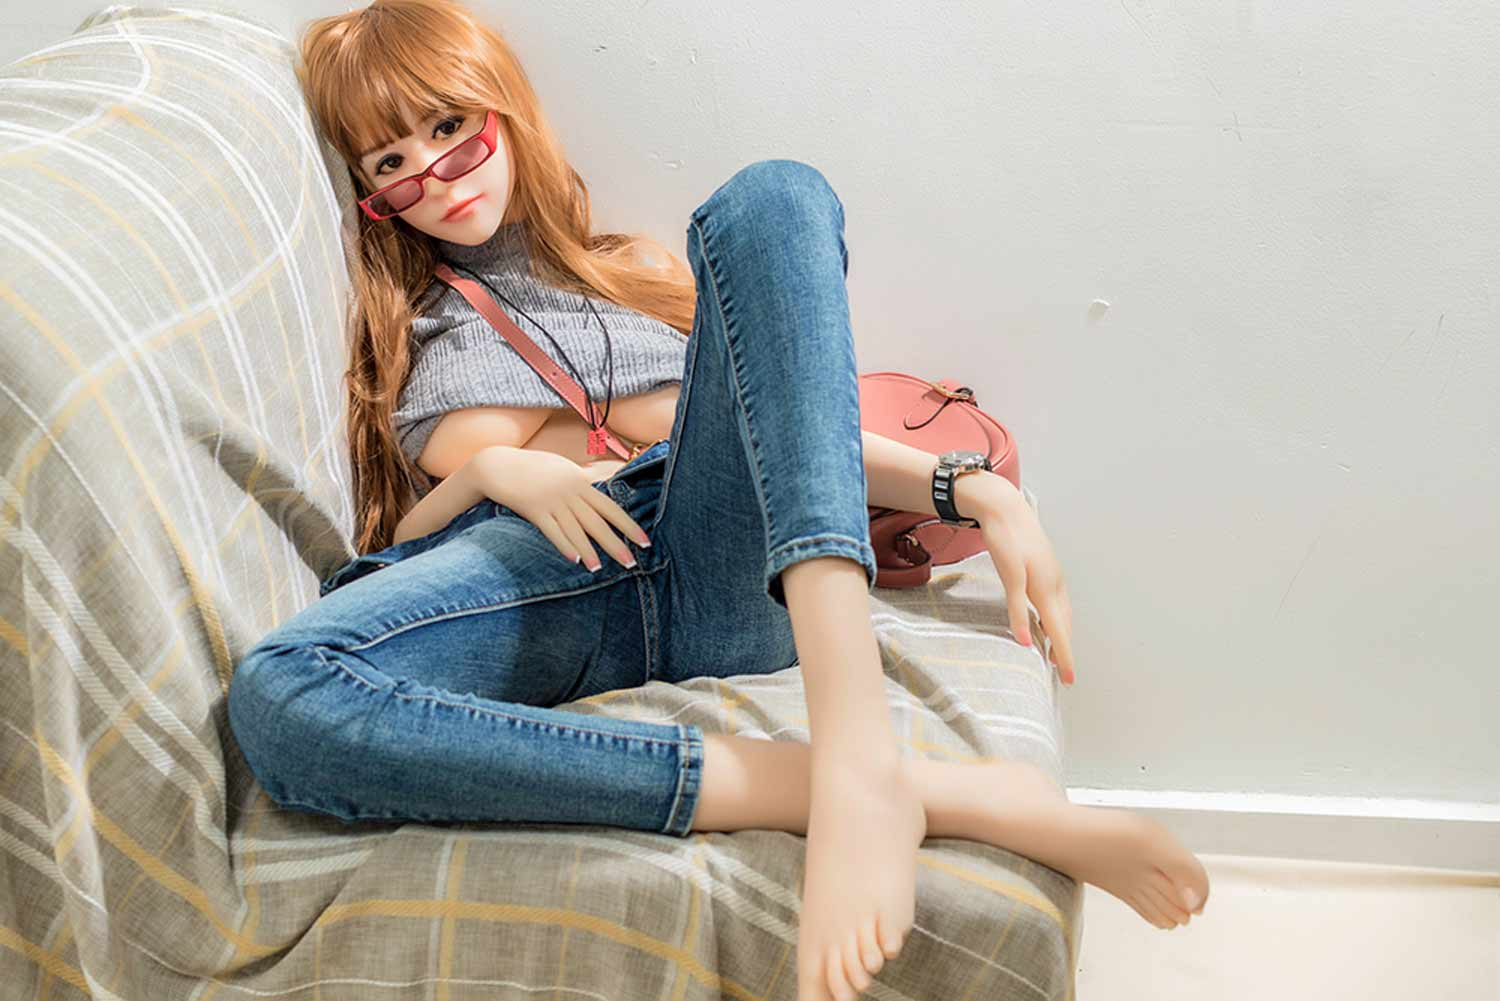 Sex doll with glasses